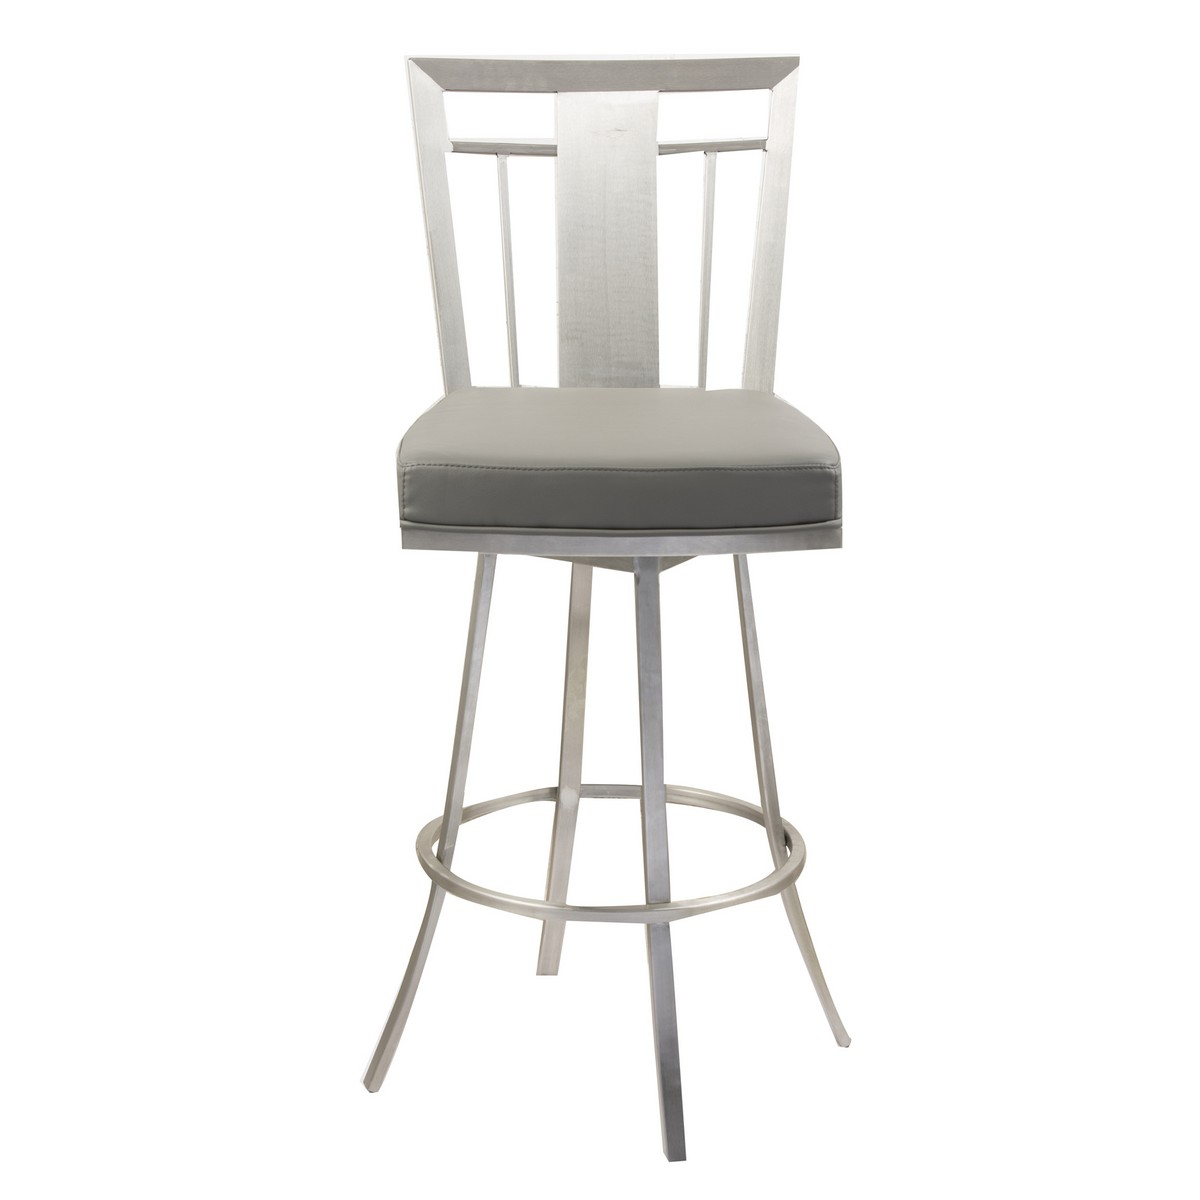 Armen Living Cleo 30-inch Modern Swivel Barstool In Gray and Stainless Steel